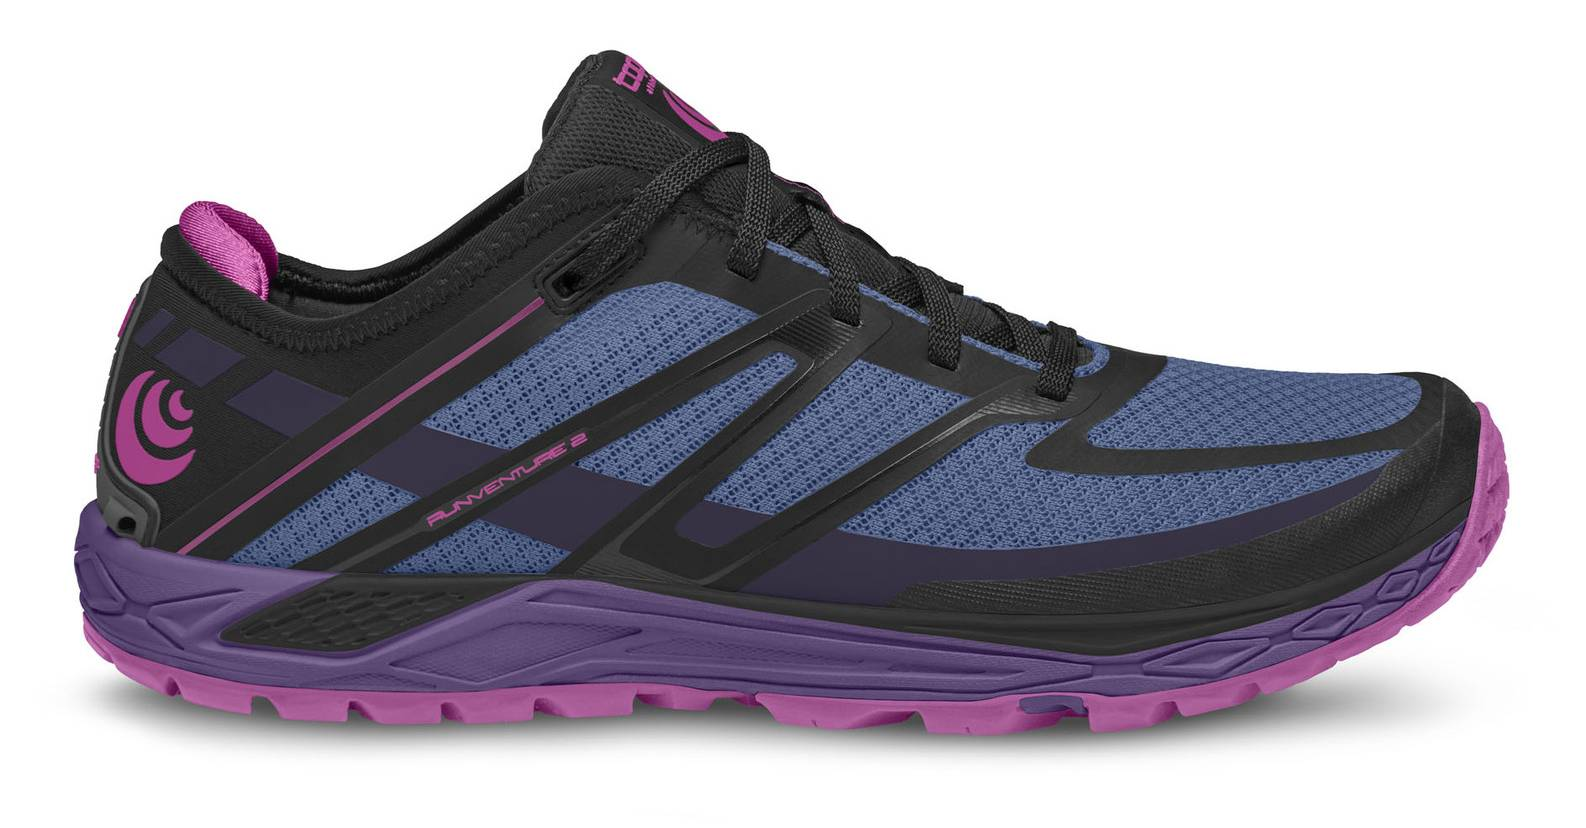 Best Trail Running Shoes for Women - Topo Athletic Runventure fd9049a3bc